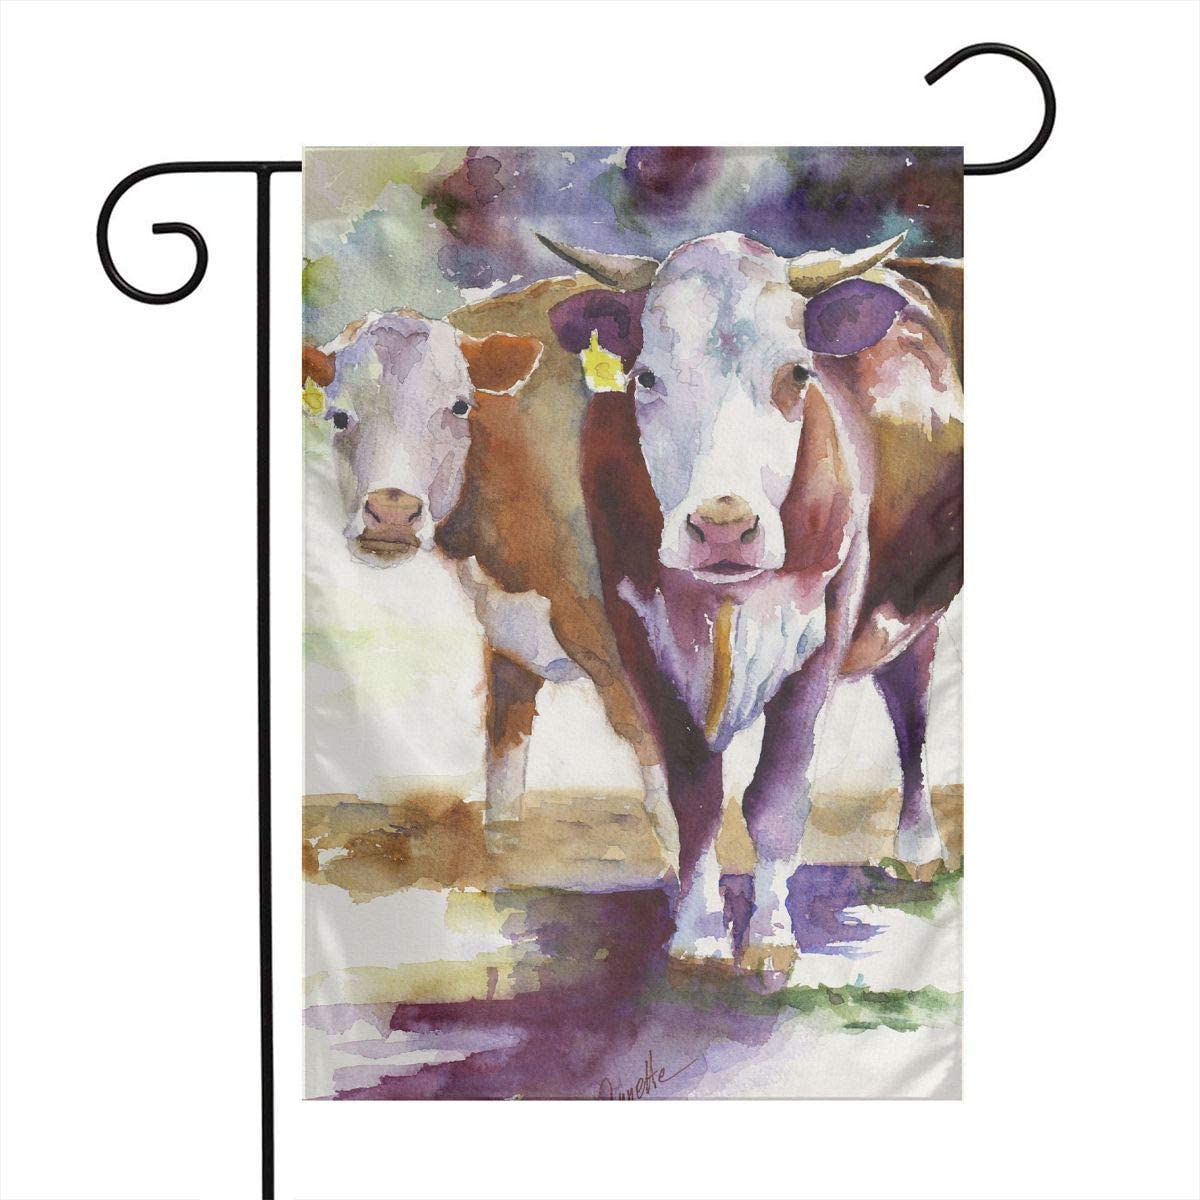 Hereford Watercolor Cow Garden Flags Home Indoor & Outdoor Holiday Decorations,Waterproof Polyester Yard Decorative for Game Family Party Banner